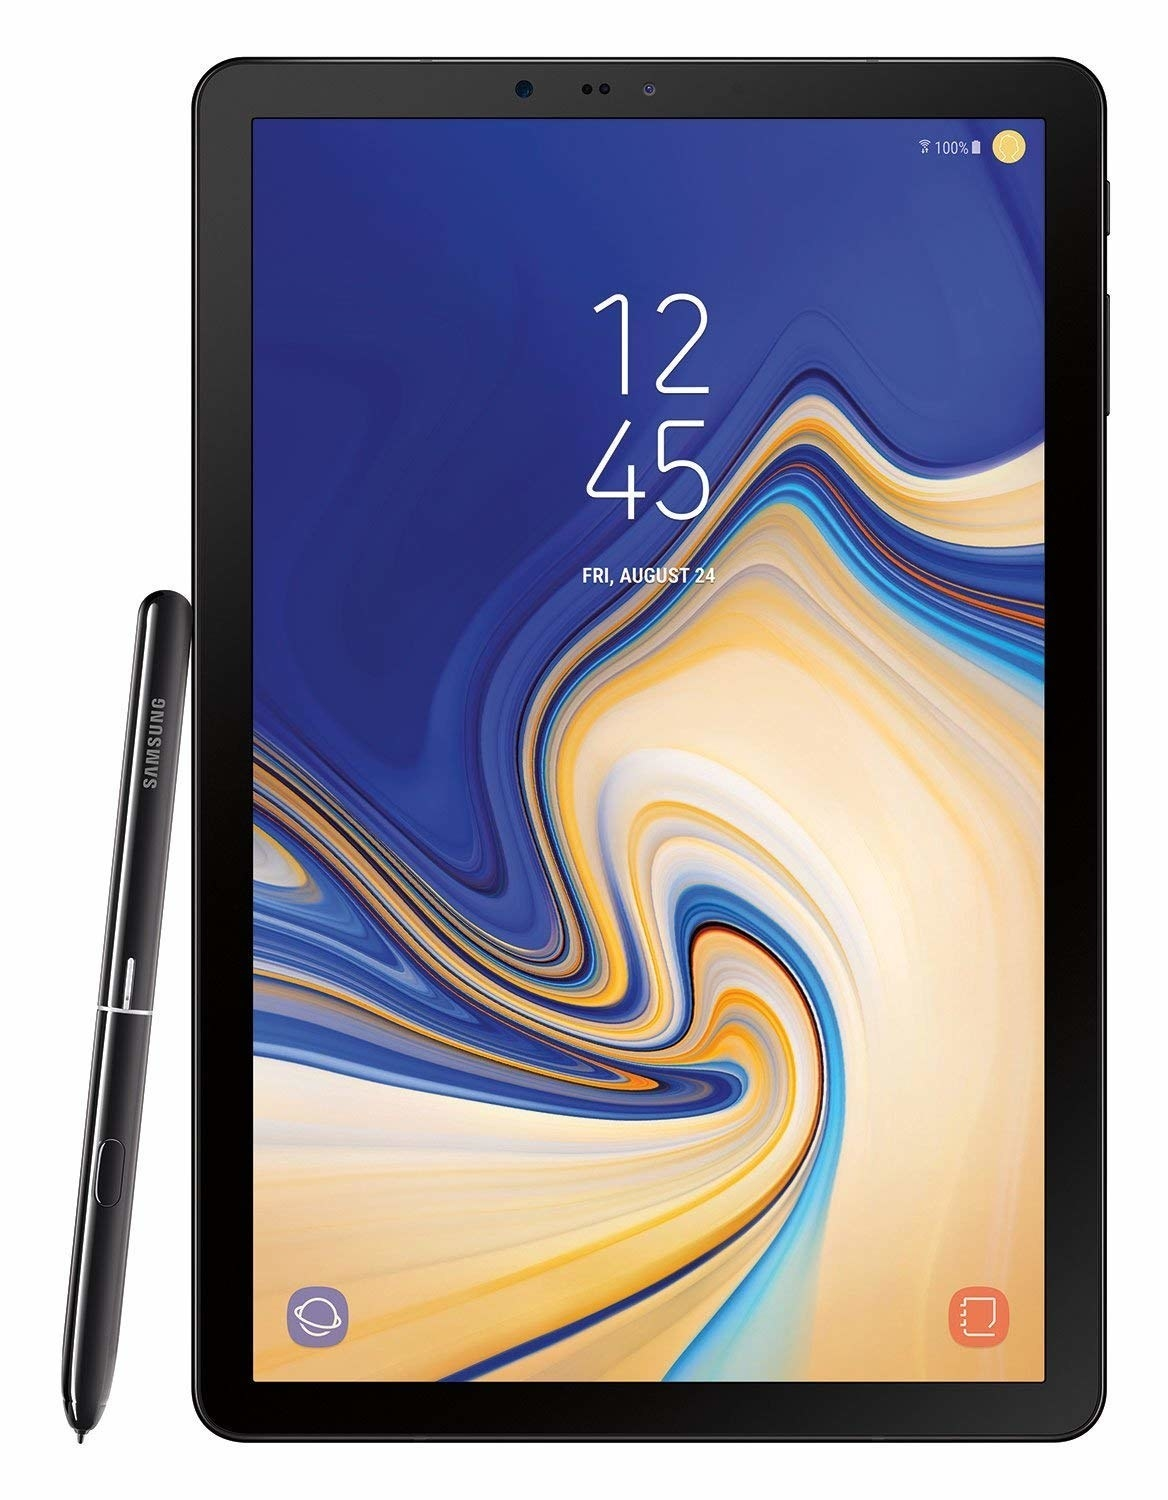 Tablet with S-Pen.